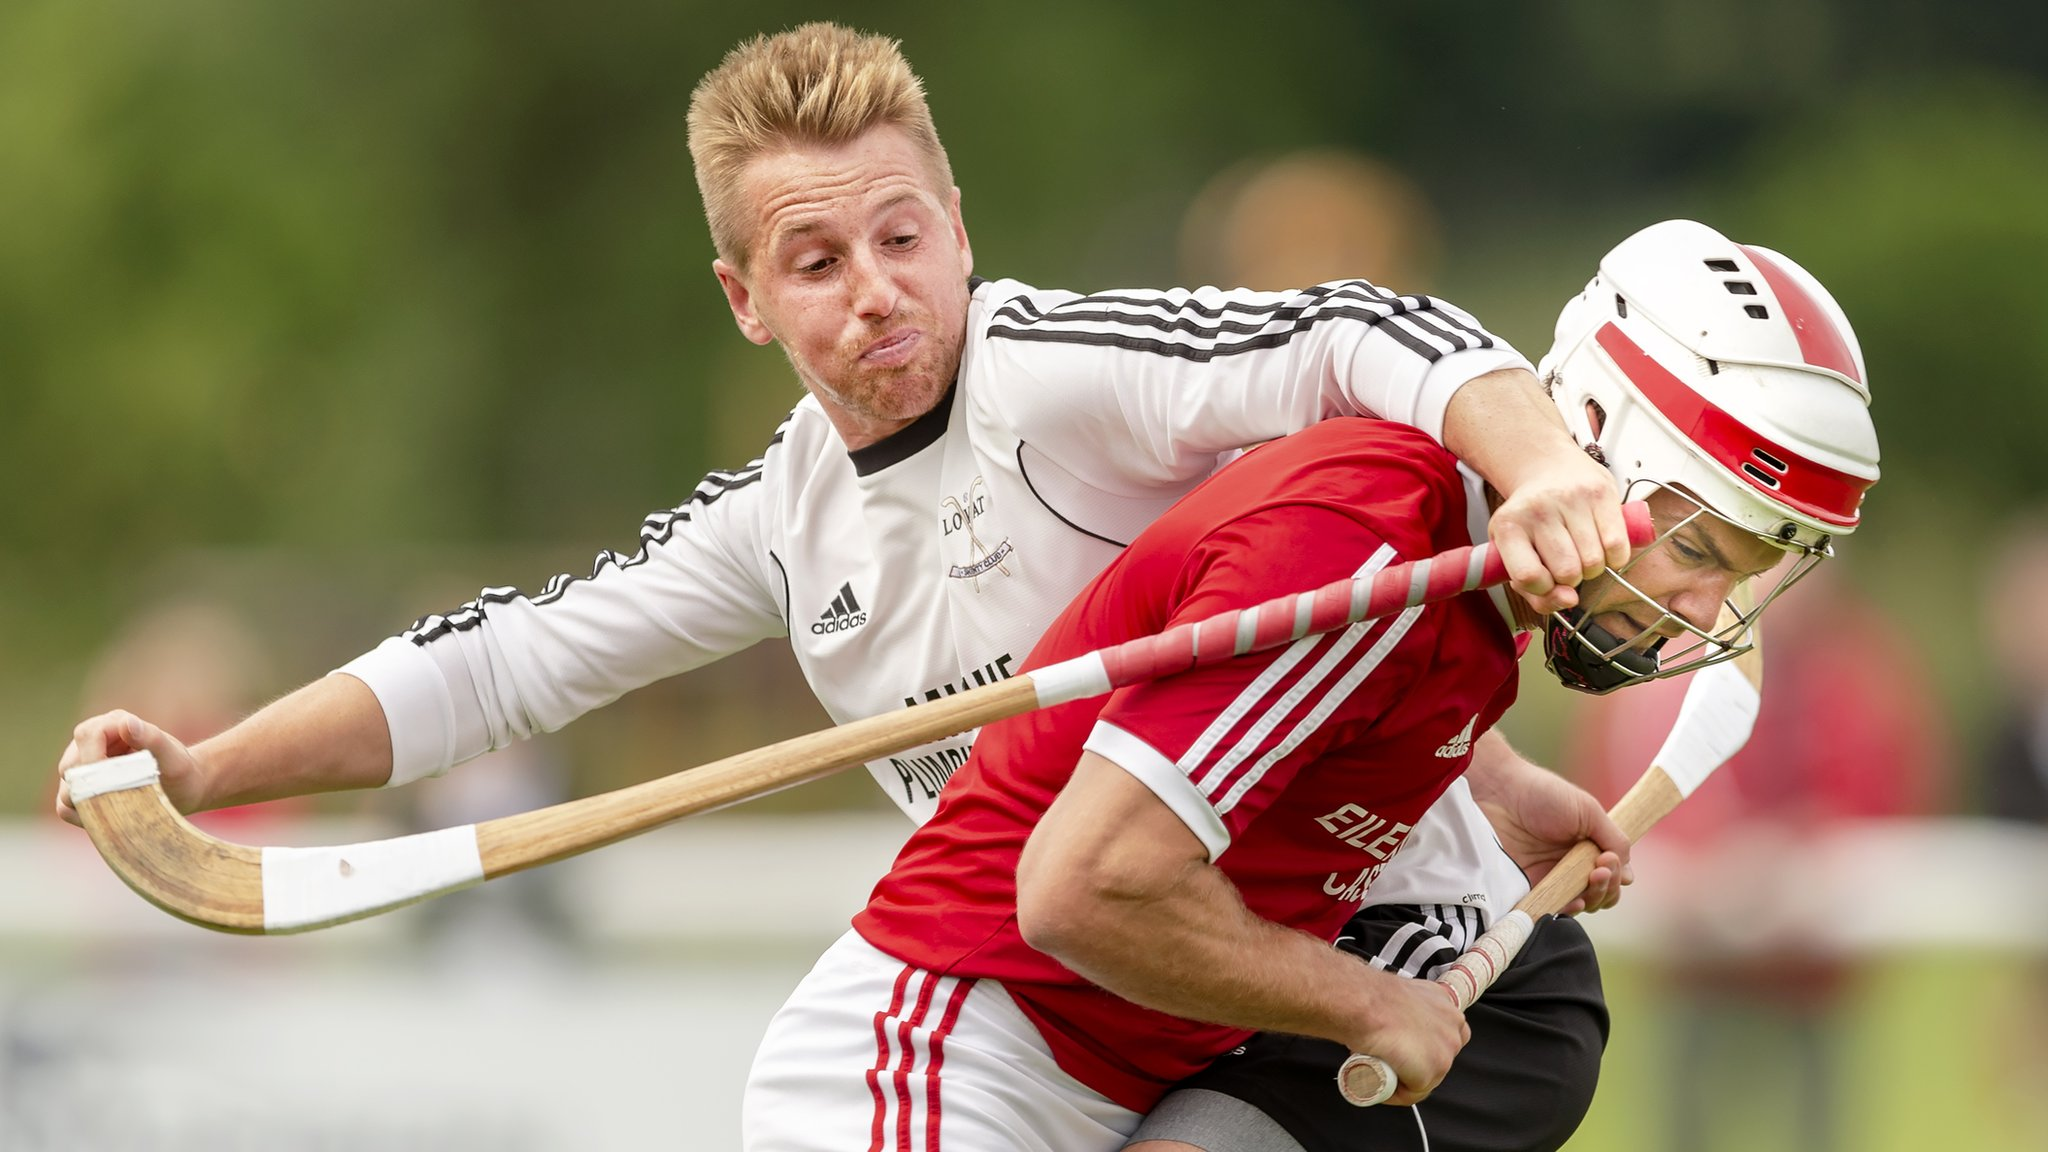 Shinty: Kyles and Kinlochshiel to meet in MacAulay Cup final